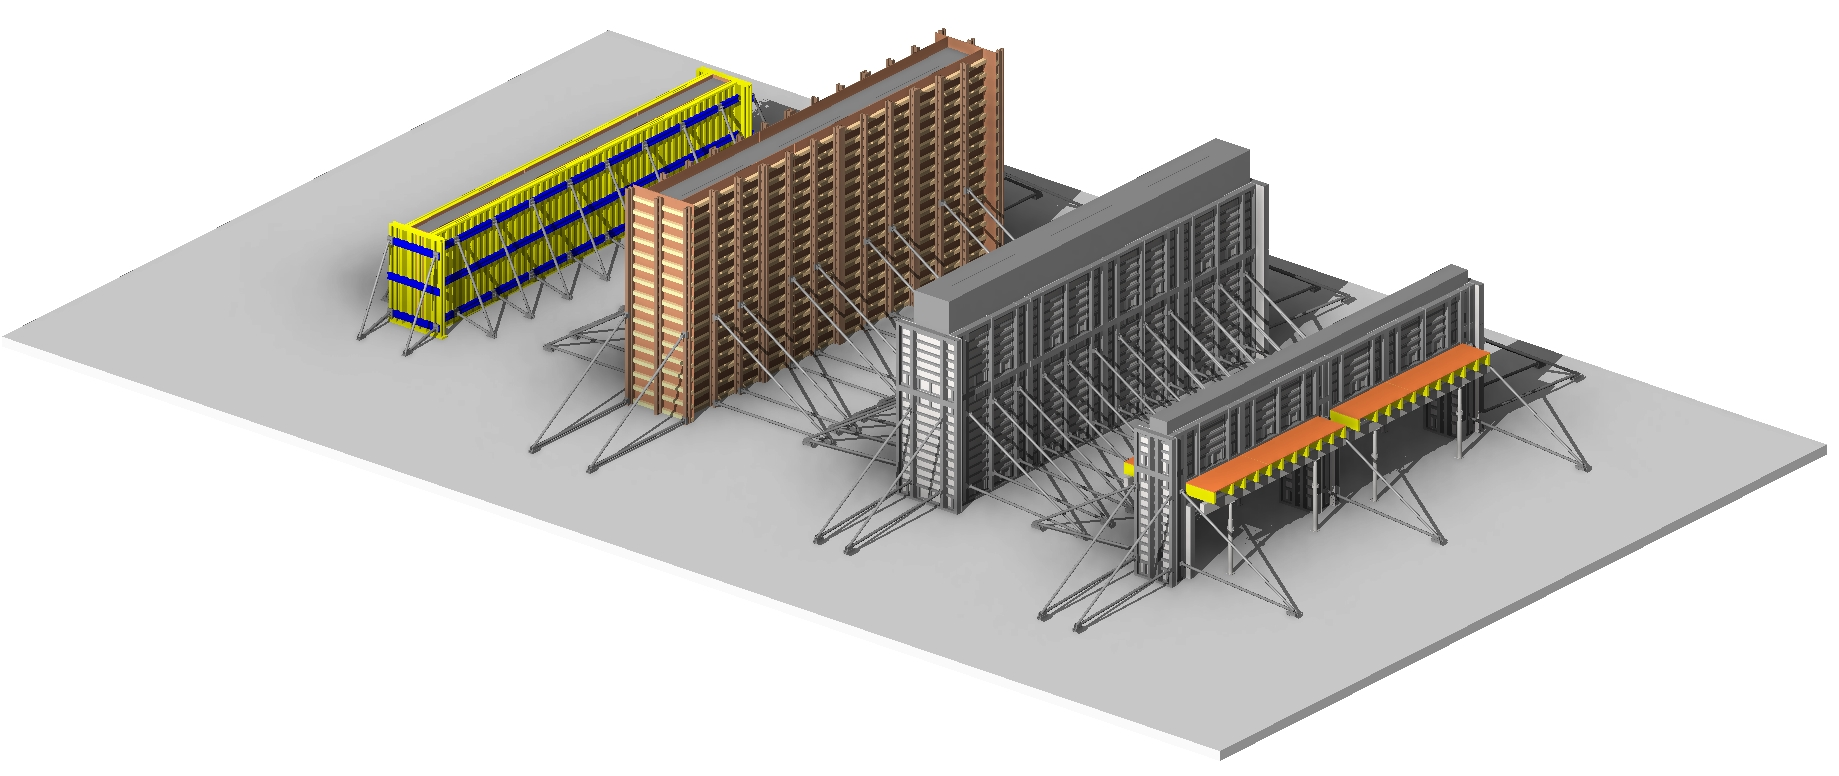 Timber/steel formwork for concrete panels in Autodesk Revit using AGACAD Wood & Metal Framing Wall BIM software